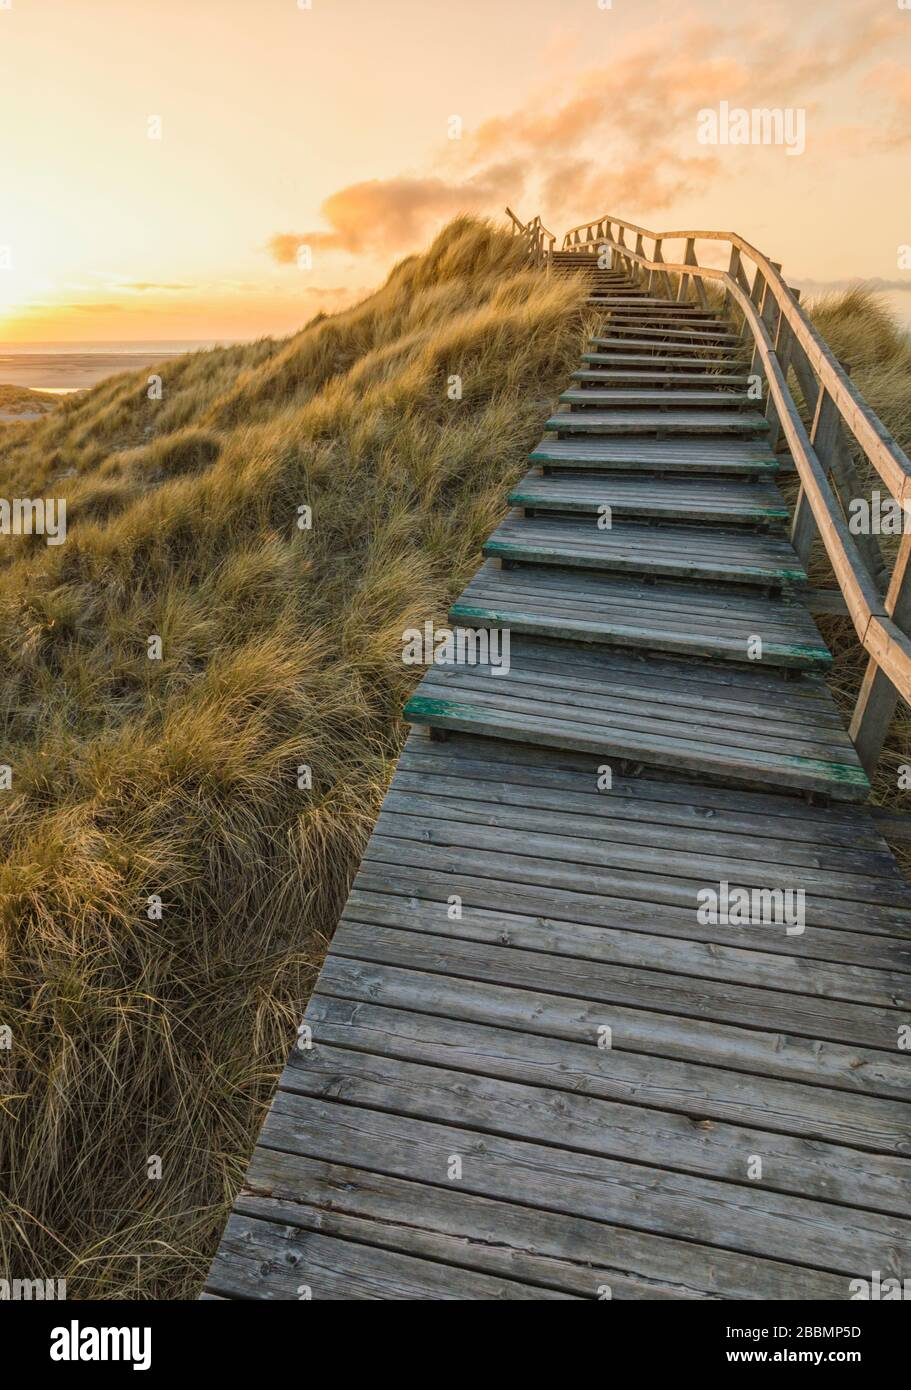 Wooden stairs crossing the dunes to the beach of Norddorf on the German North Sea island of Amrum in  vibrant sunset Stock Photo